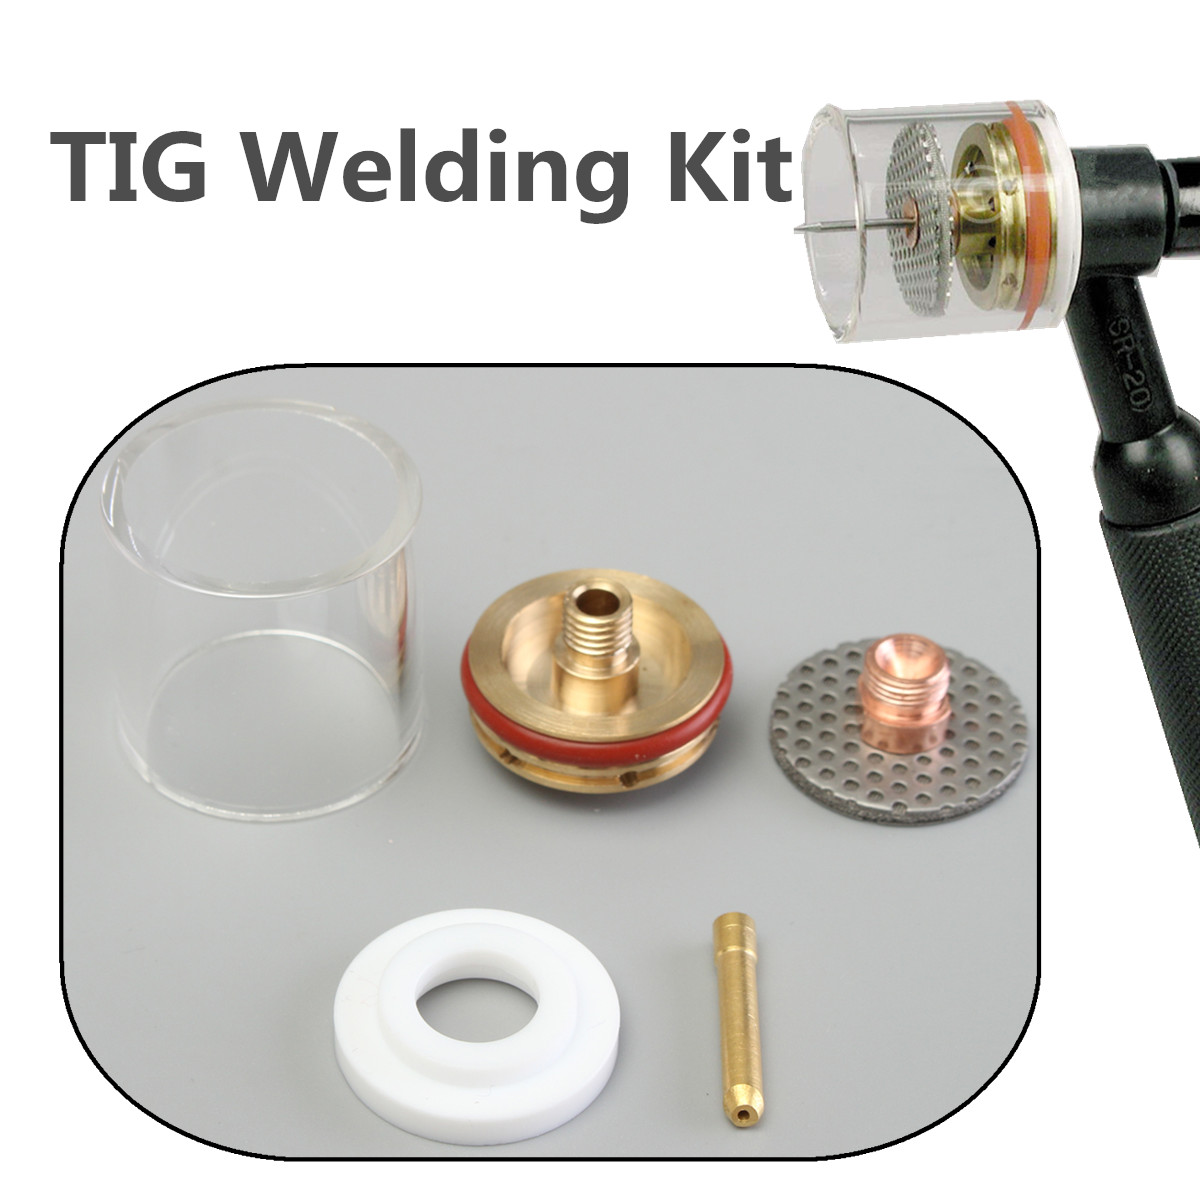 New 5PCS 1.0/2.0/1.6/2.4/3.2mm TIG Welding Torch Gas Lens Pyrex Cup Kit For WP-9 20 Series